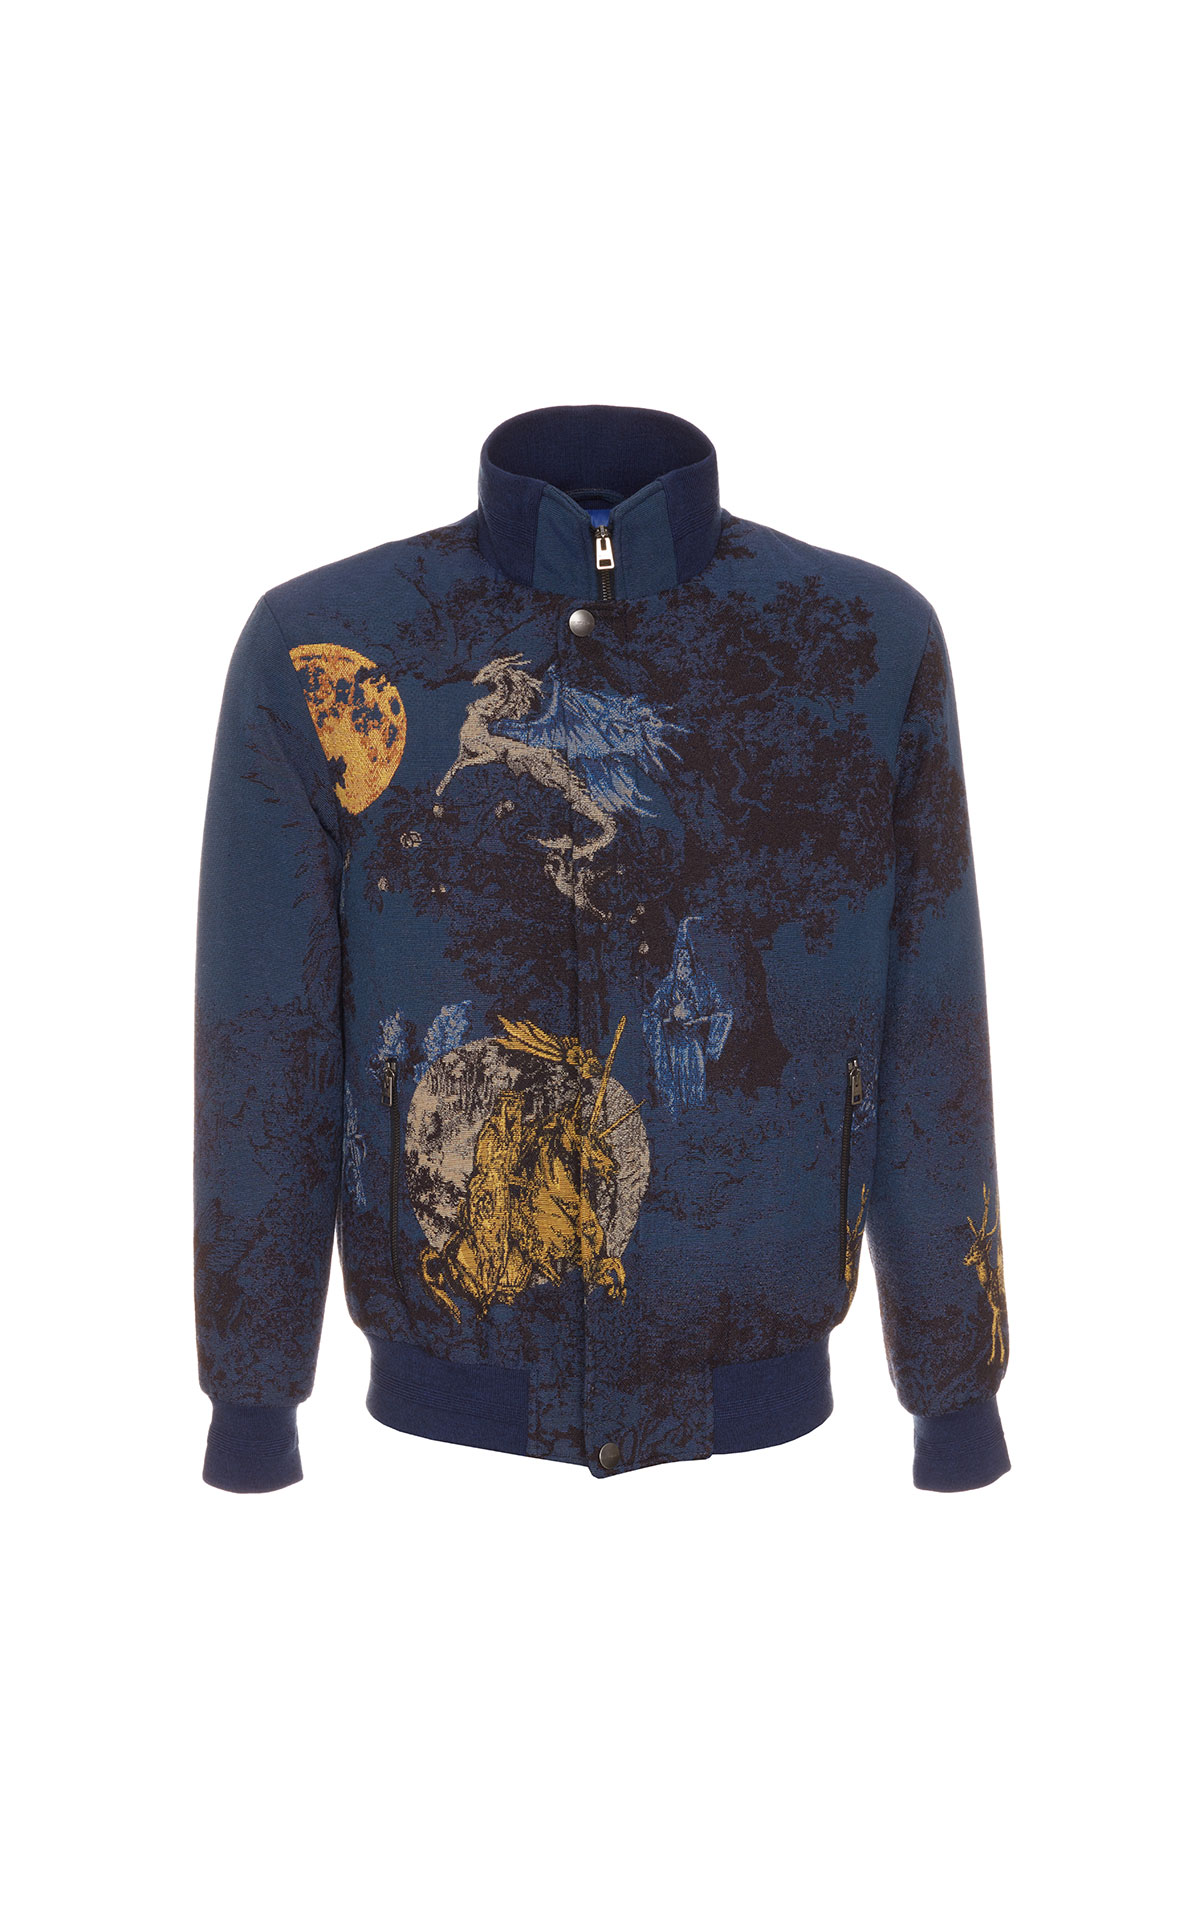 Etro Bomber jacket men's fantasy print from Bicester Village